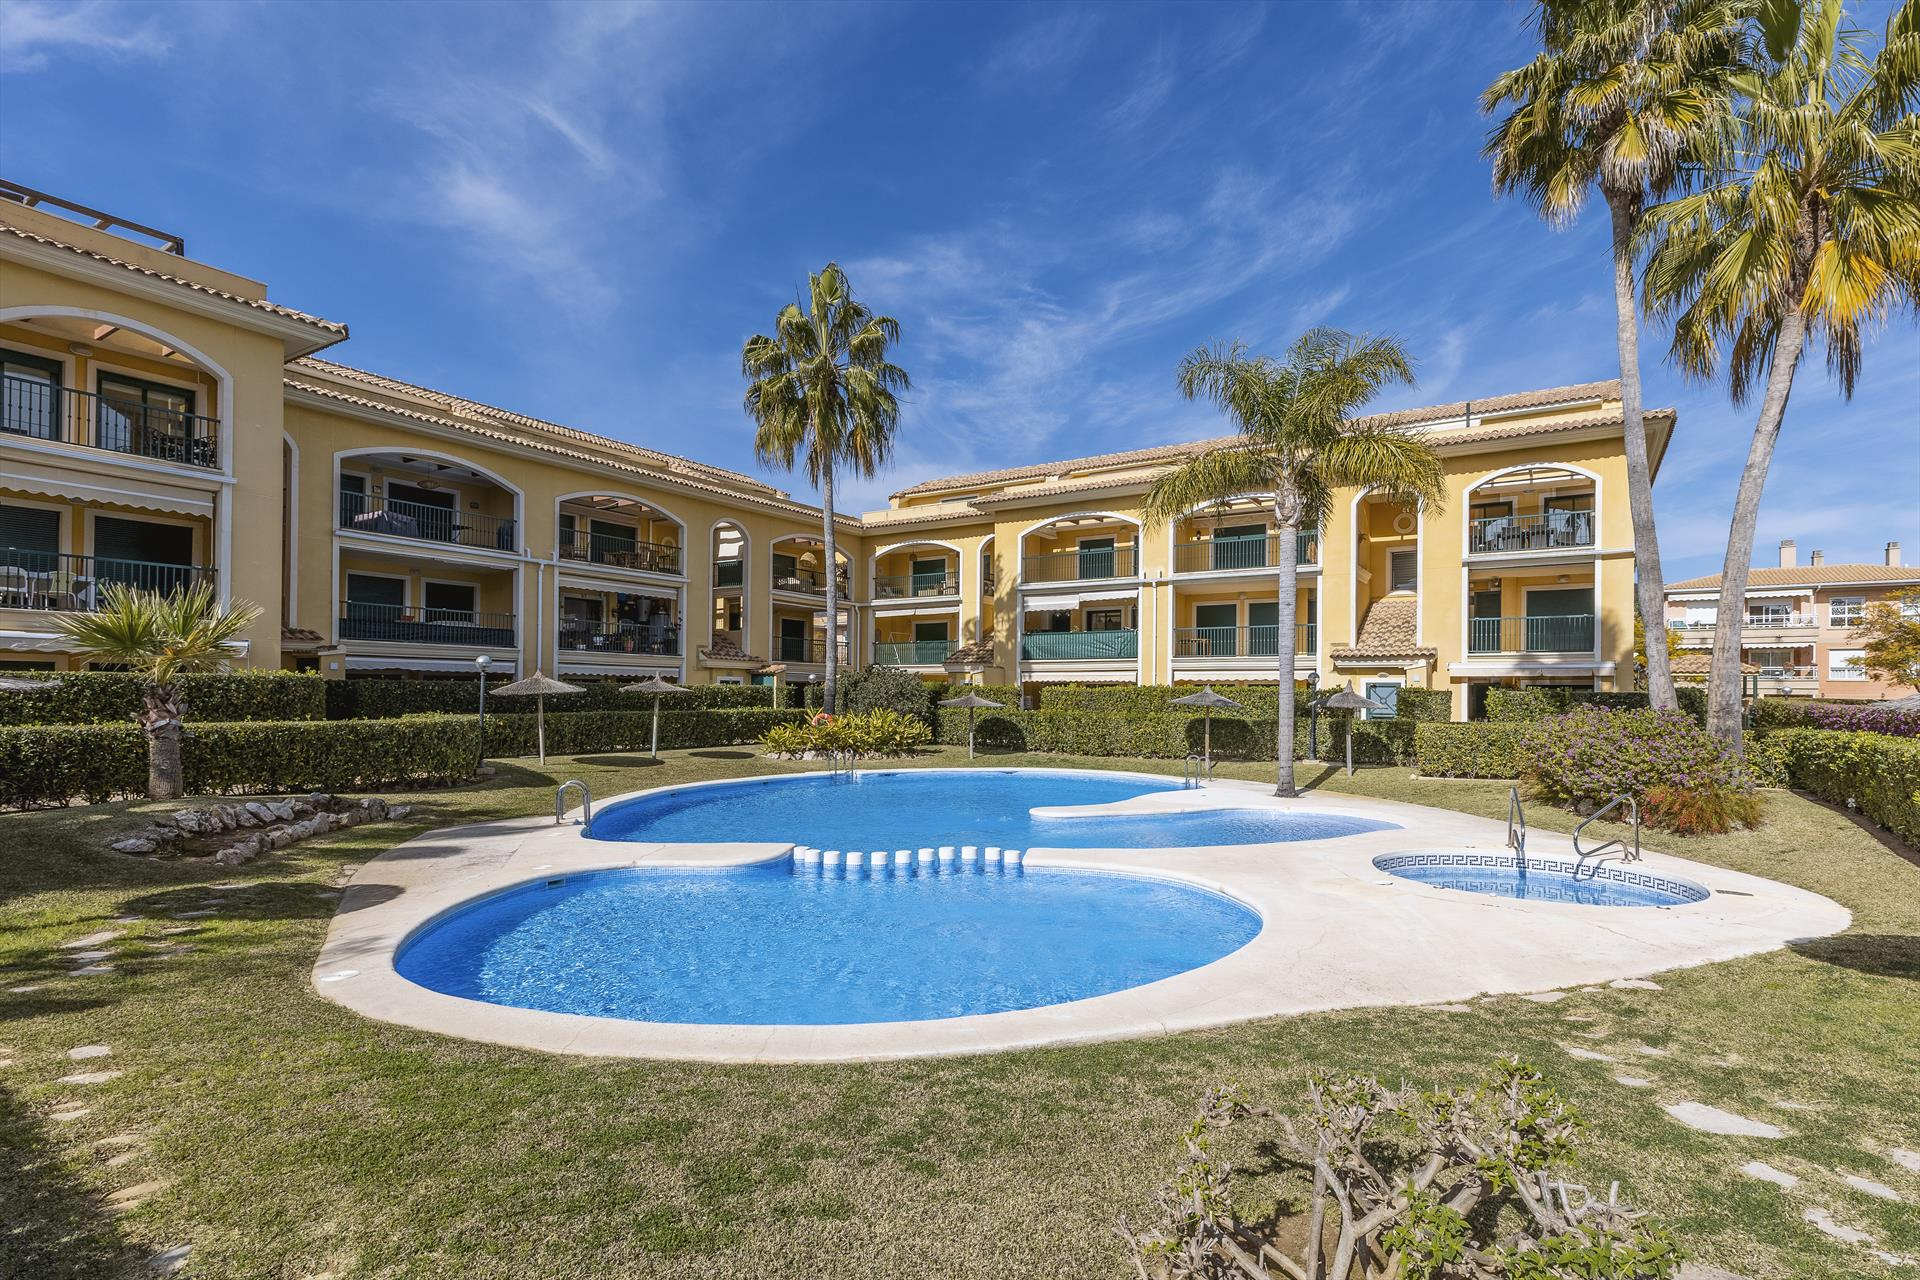 Luz de Javea 4 pax, Beautiful and comfortable apartment in Javea, on the Costa Blanca, Spain  with communal pool for 4 persons.....